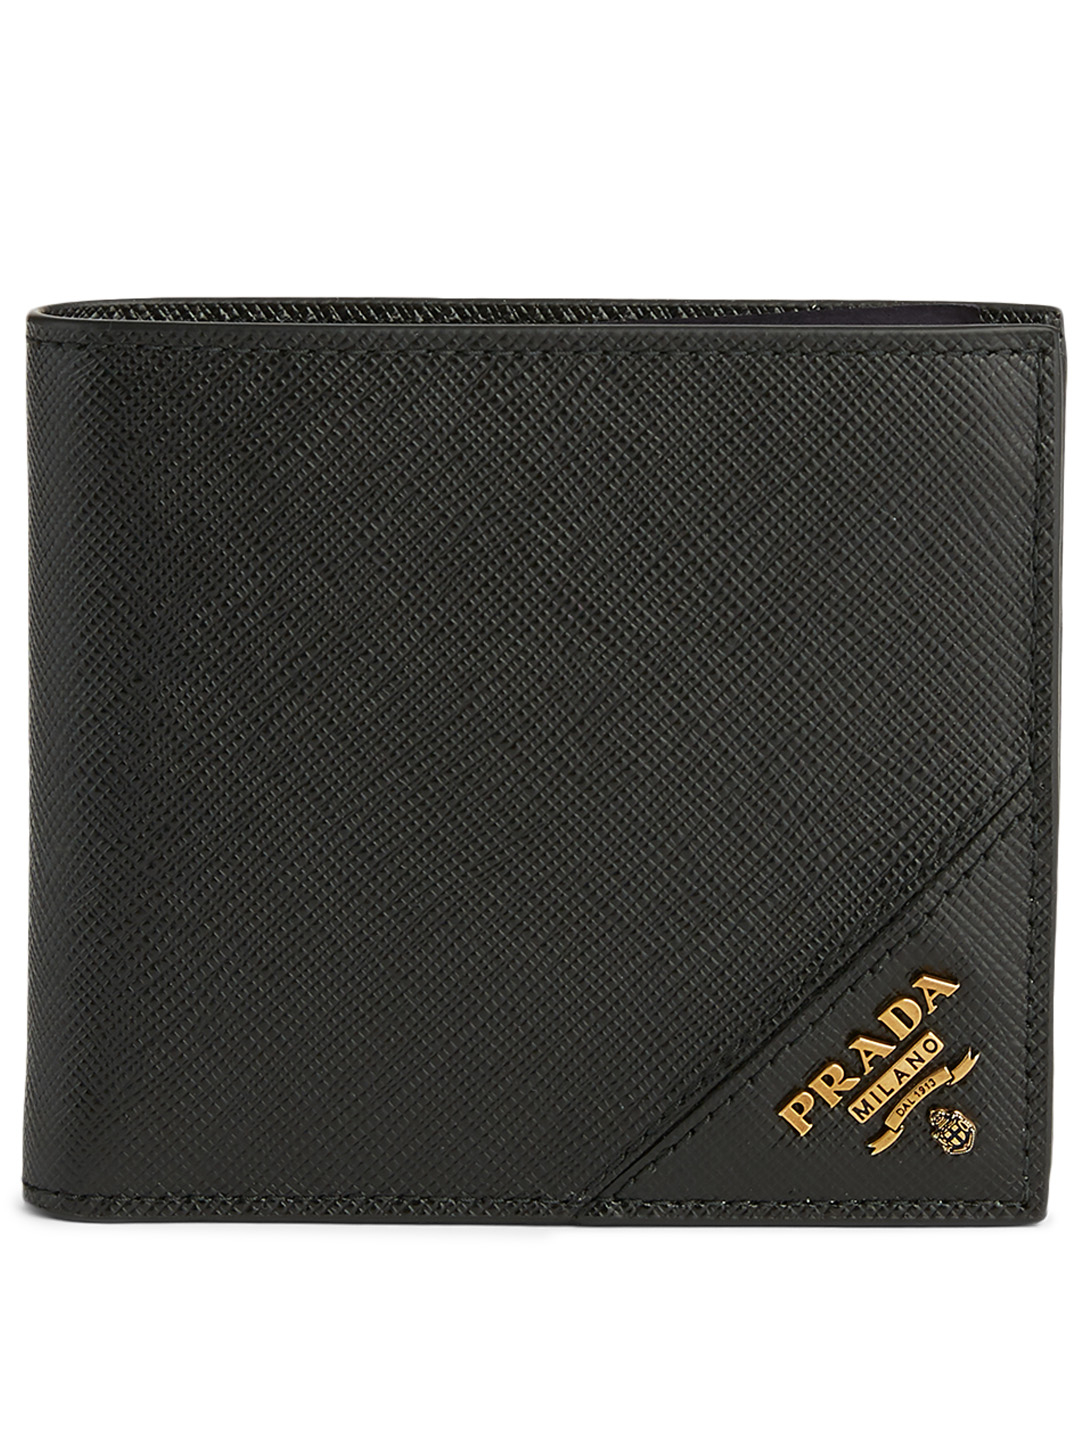 PRADA Saffiano Leather Contrast Logo Wallet Men's Black